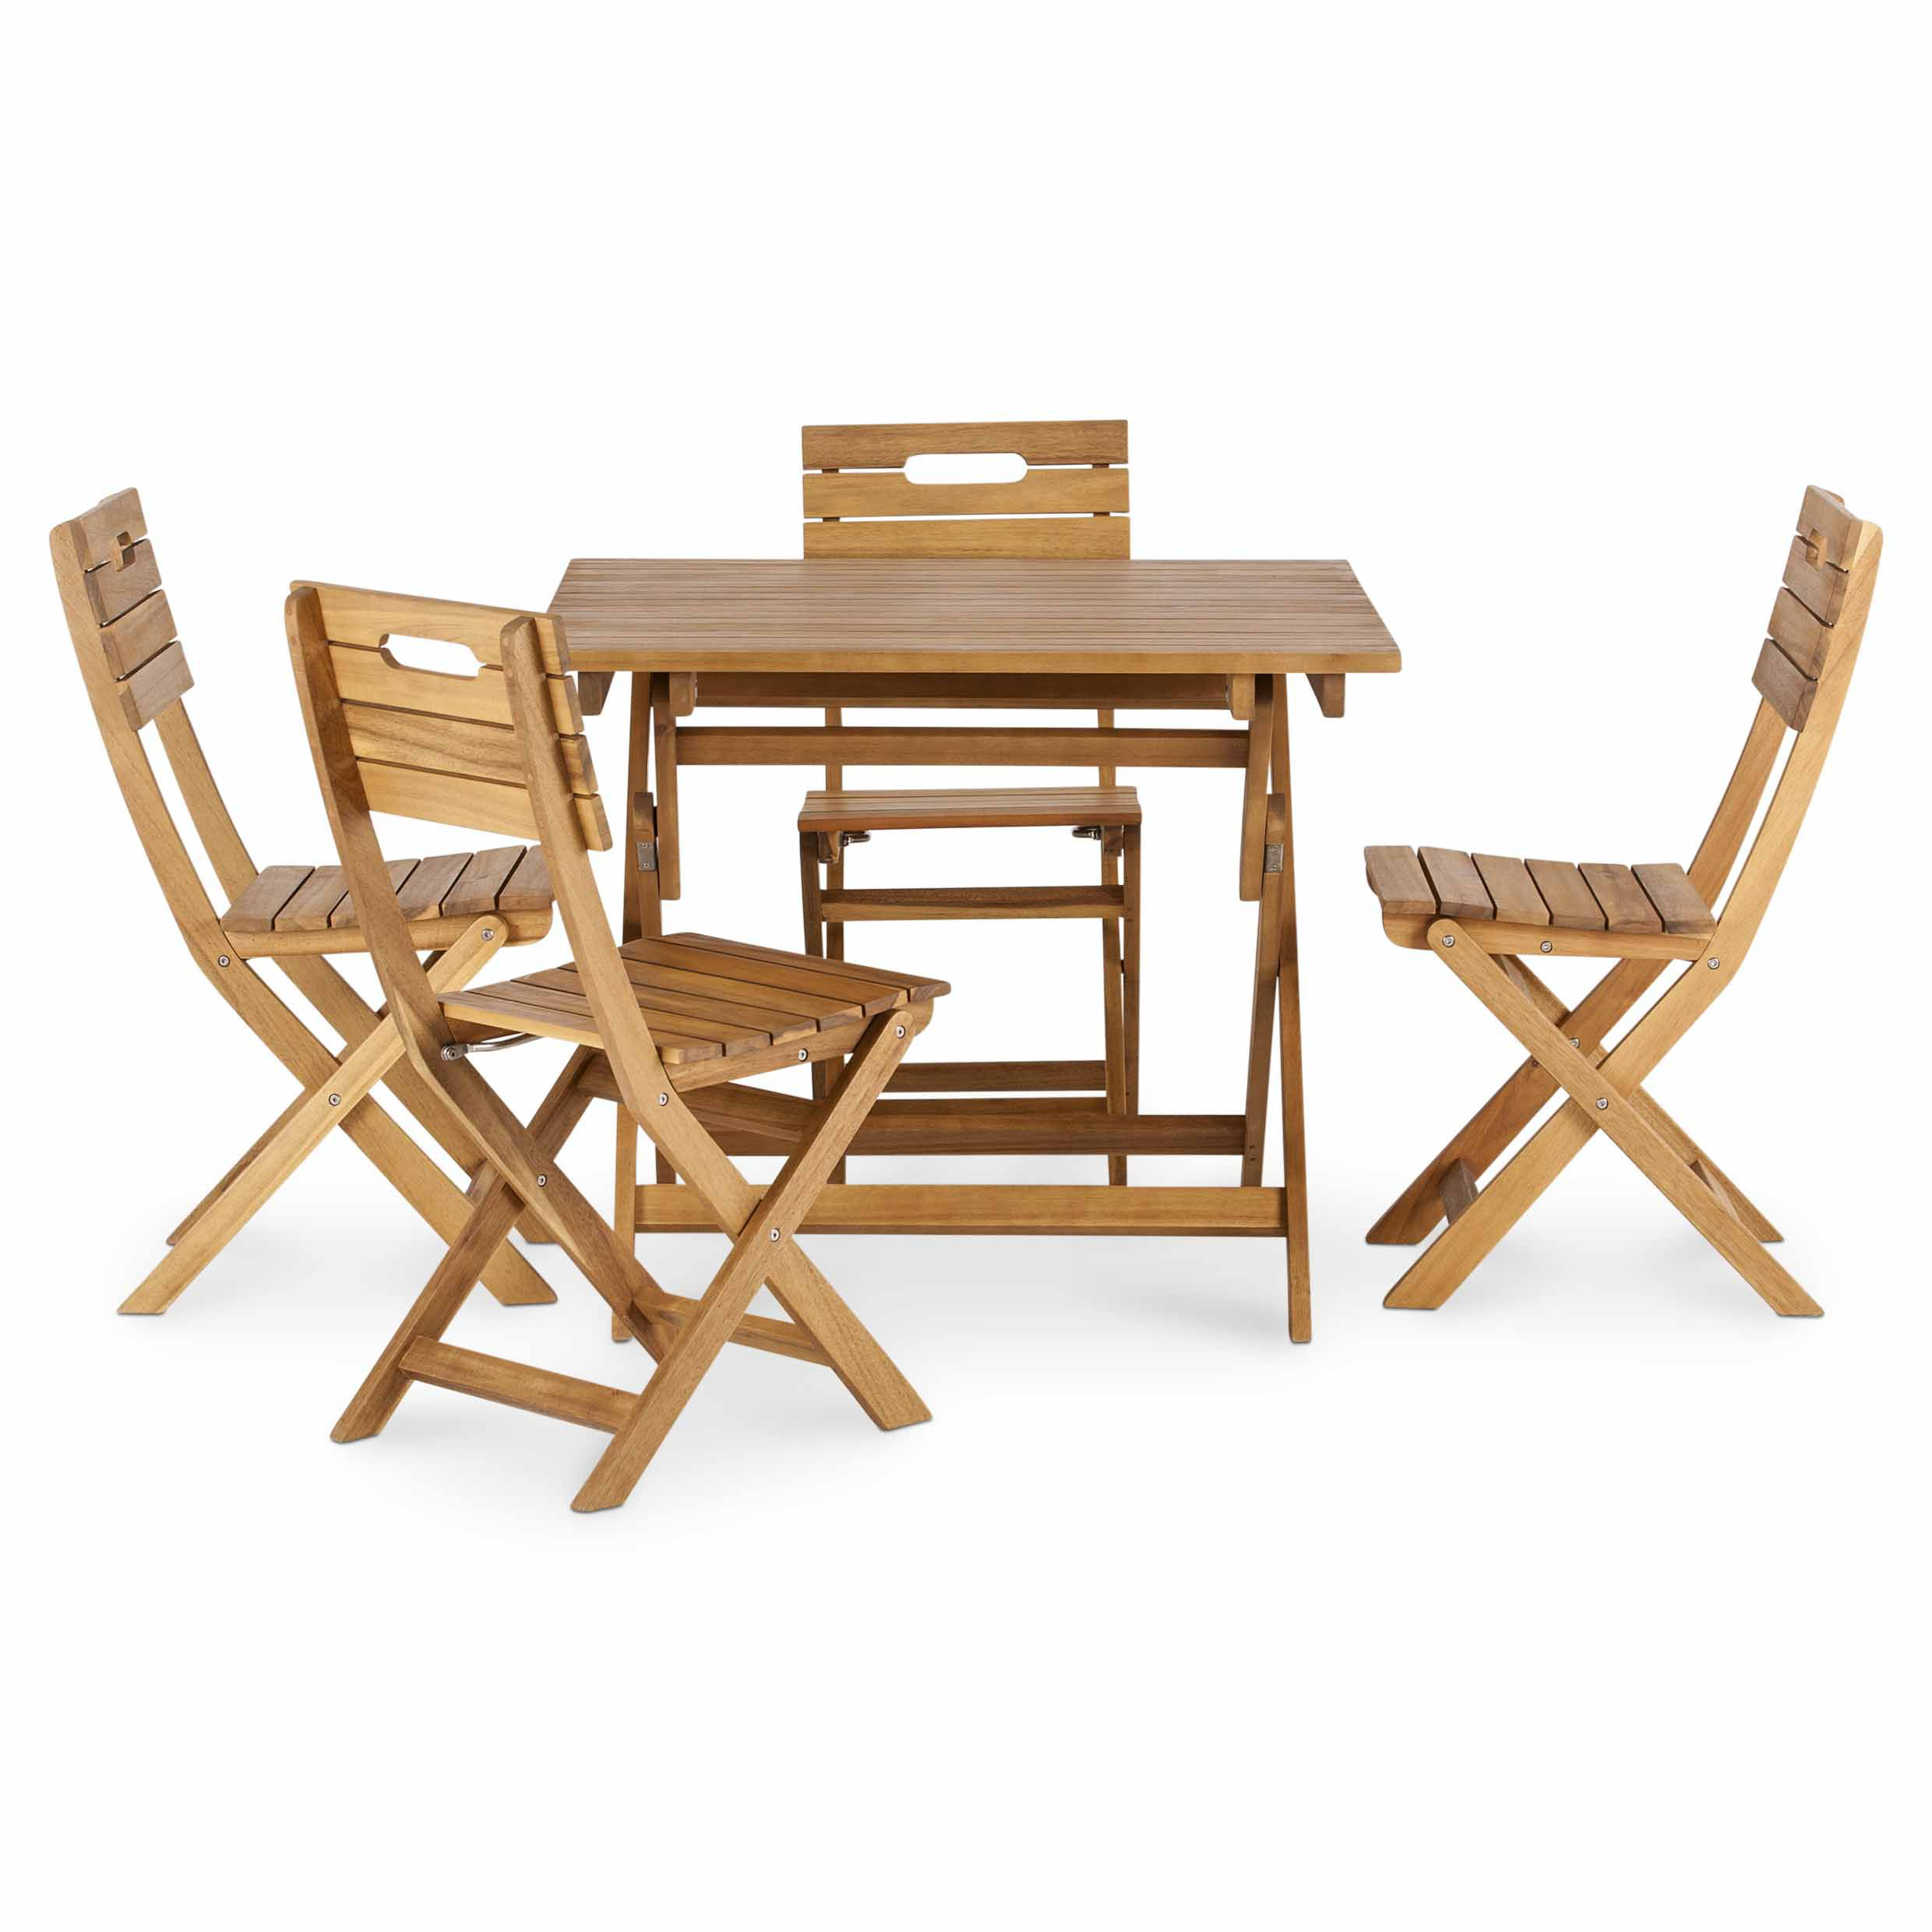 Fantastic Denia Wooden Folding Chair Departments Diy At Bq Pabps2019 Chair Design Images Pabps2019Com